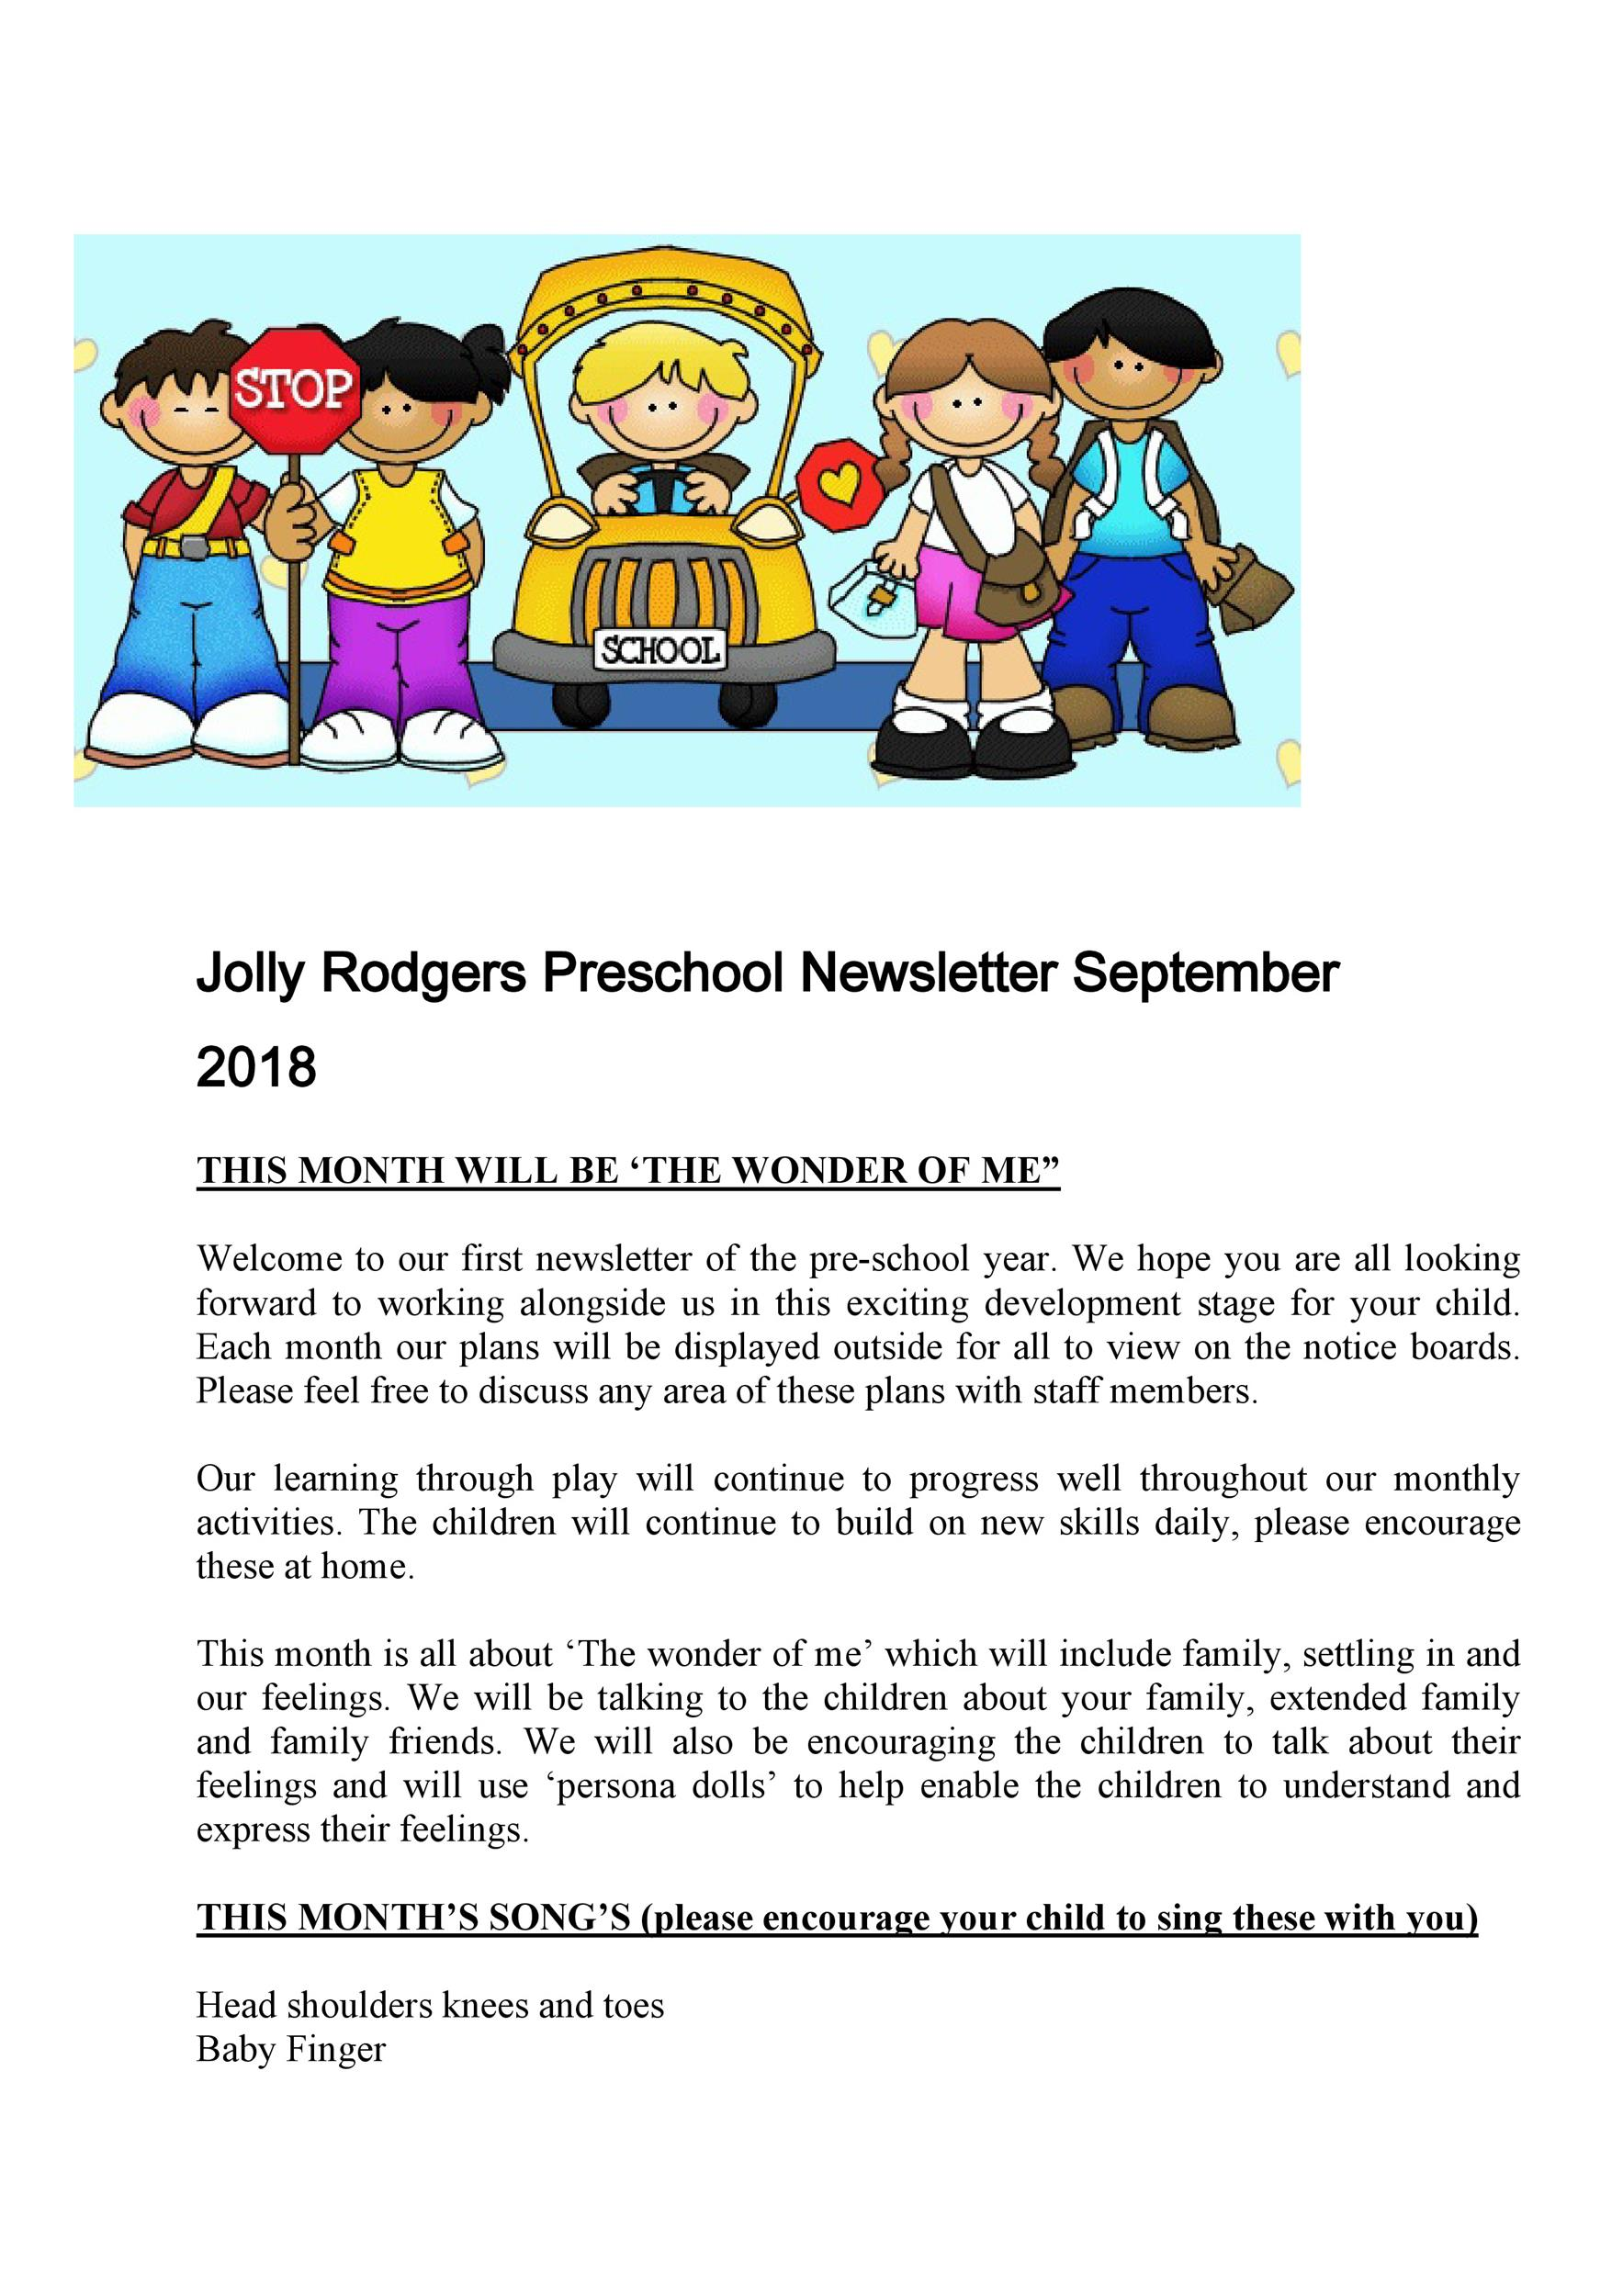 Free preschool newsletter template 04